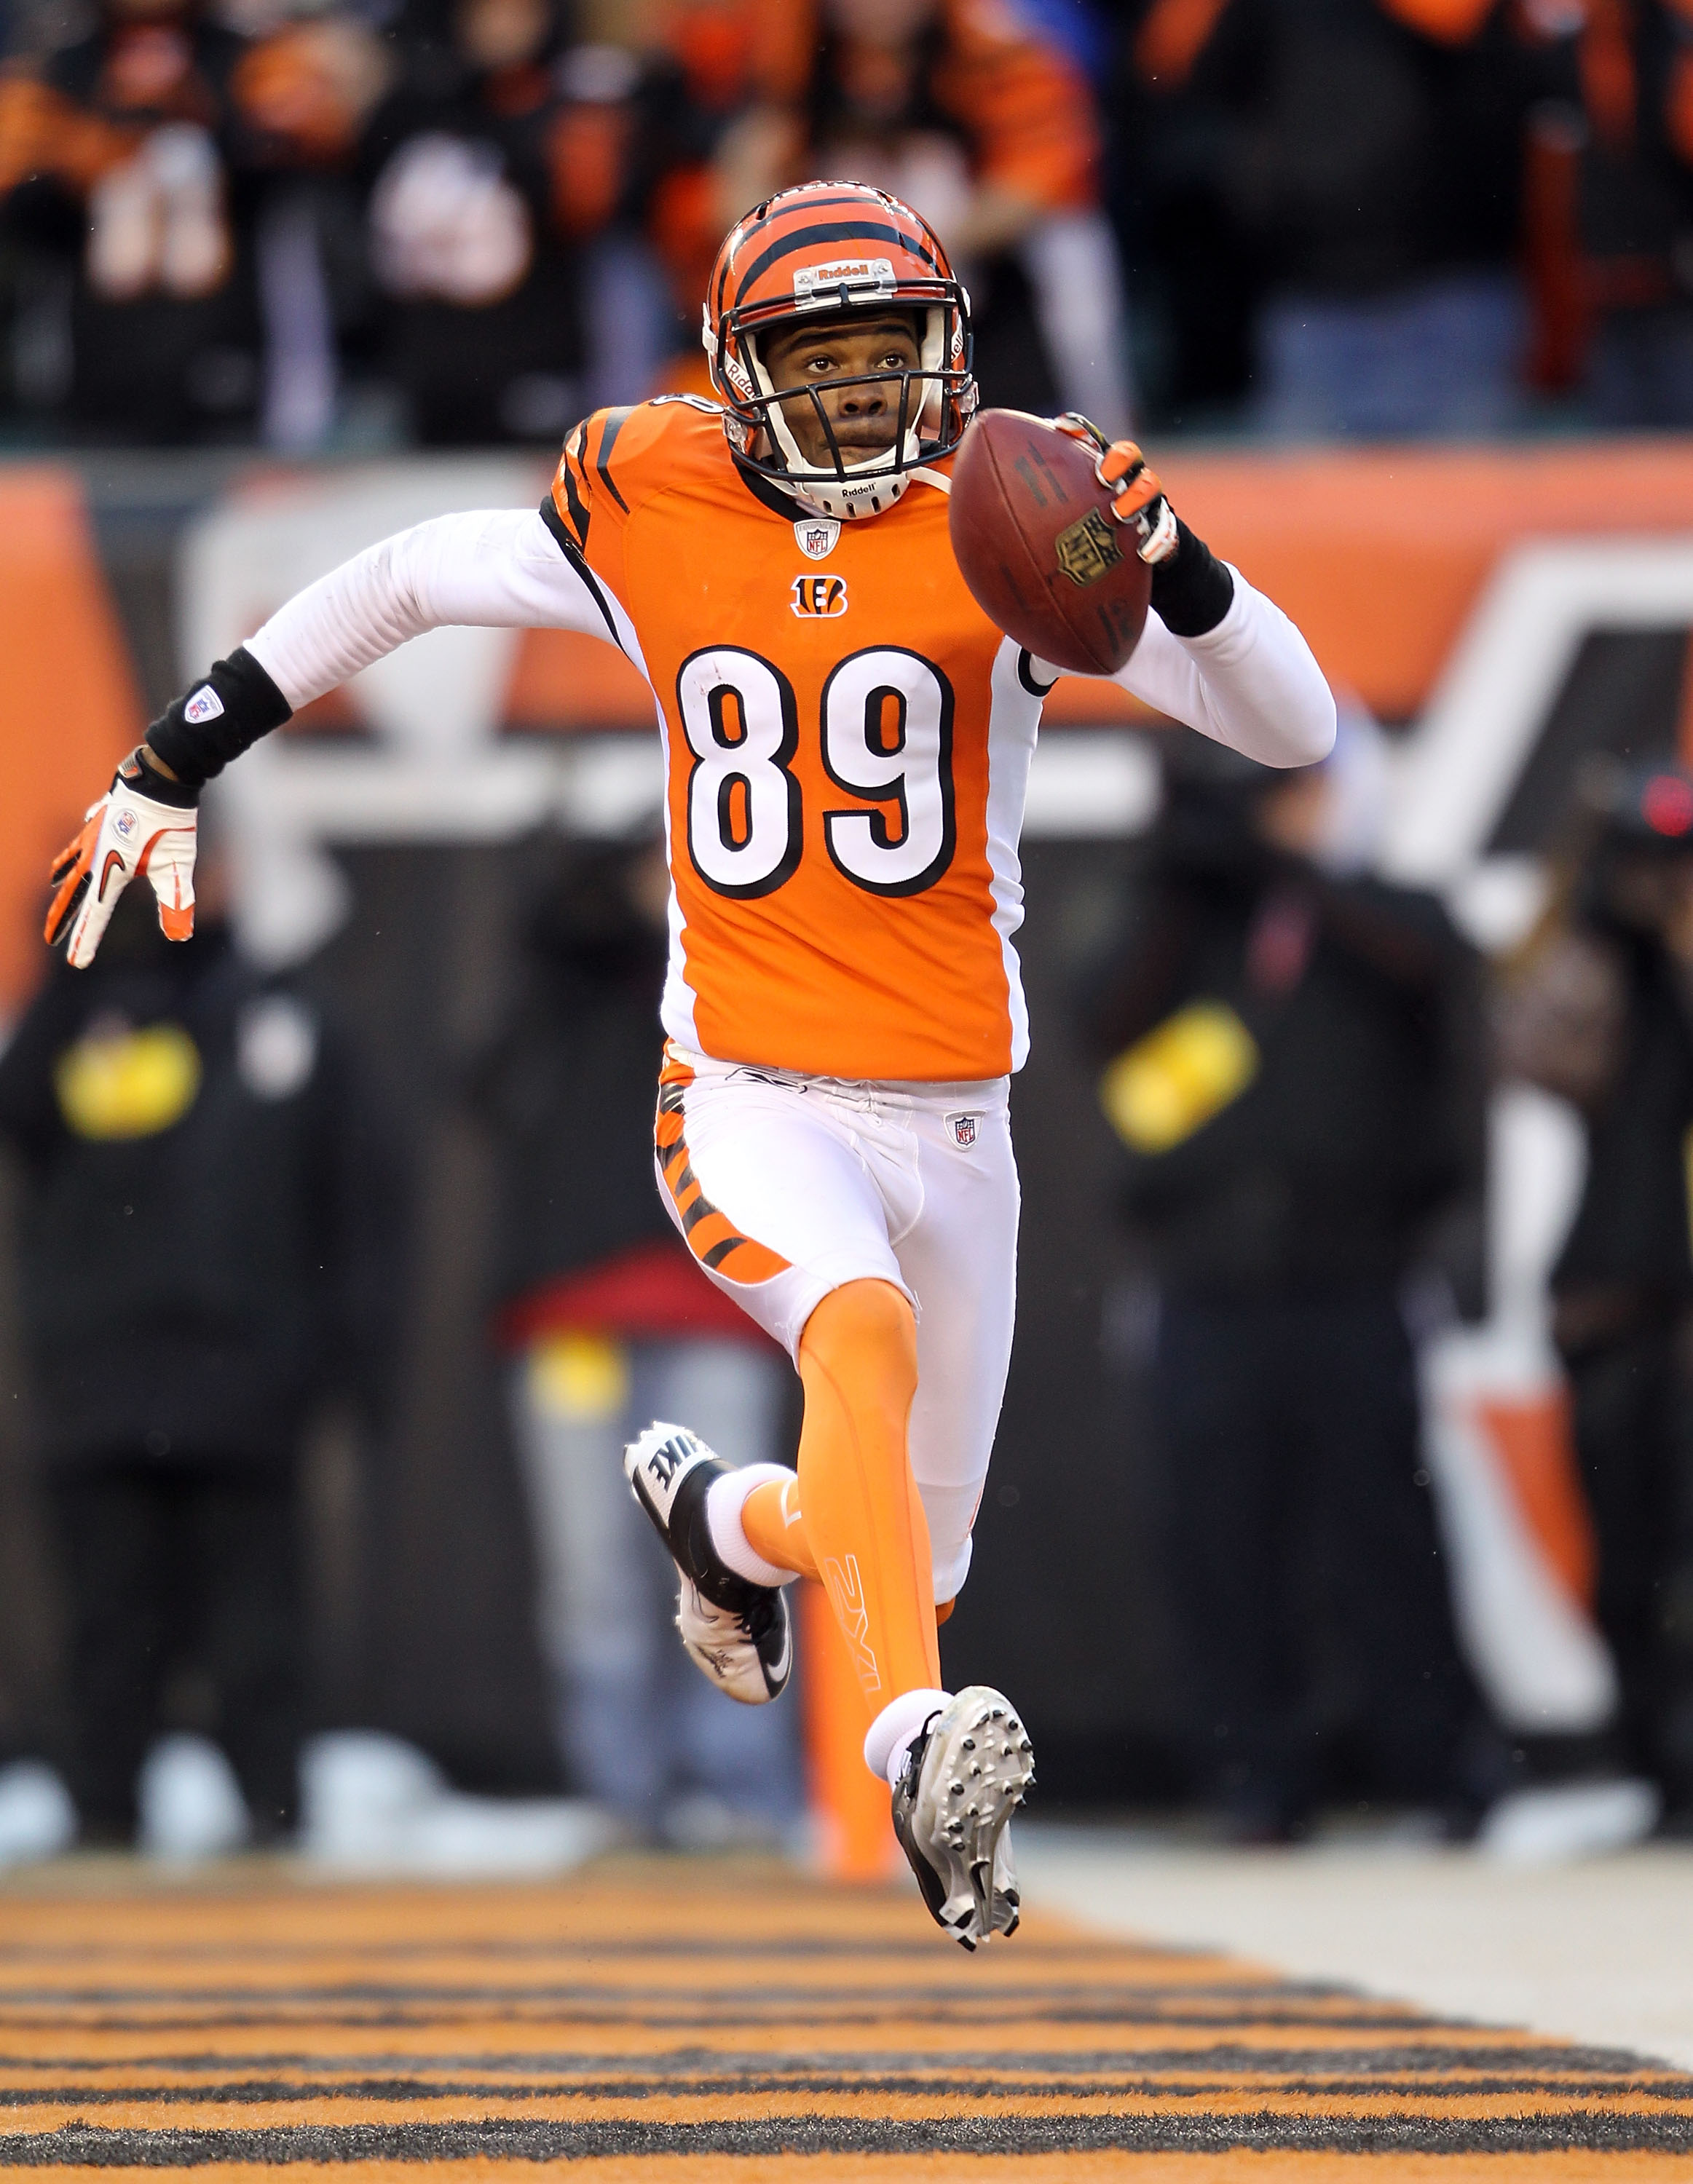 Wide receiver Jerome Simpson (pictured) could post monster numbers next season paired alongside rookie A.J. Green.